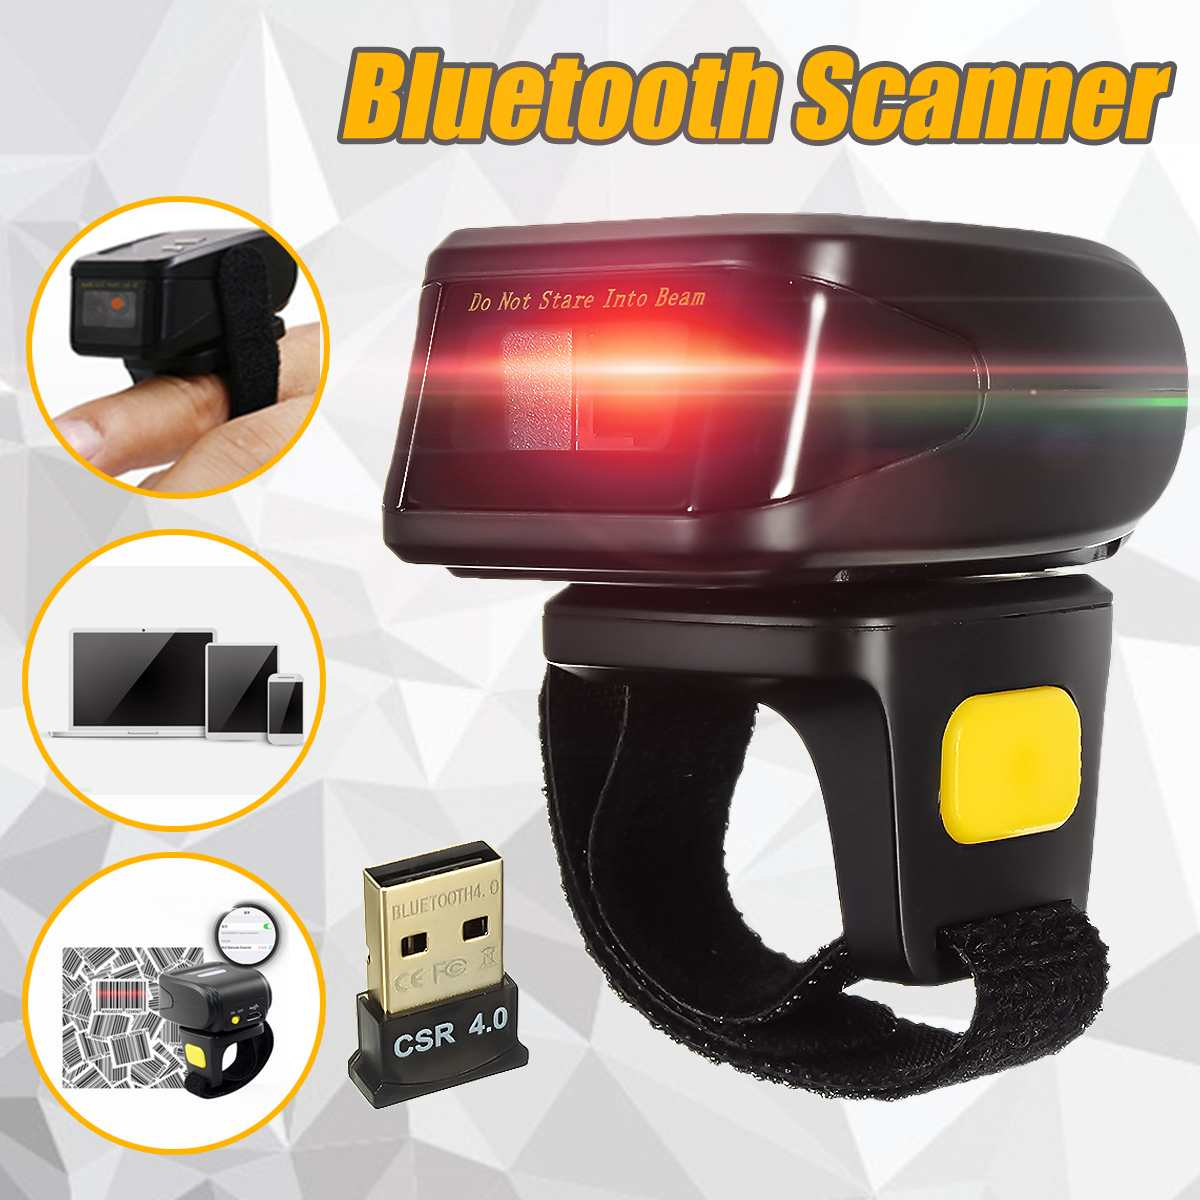 Handheld Wirelress Barcode Scanner Wearable Ring bluetooth Bar Code Reader for IOS Android Tablets Win PC